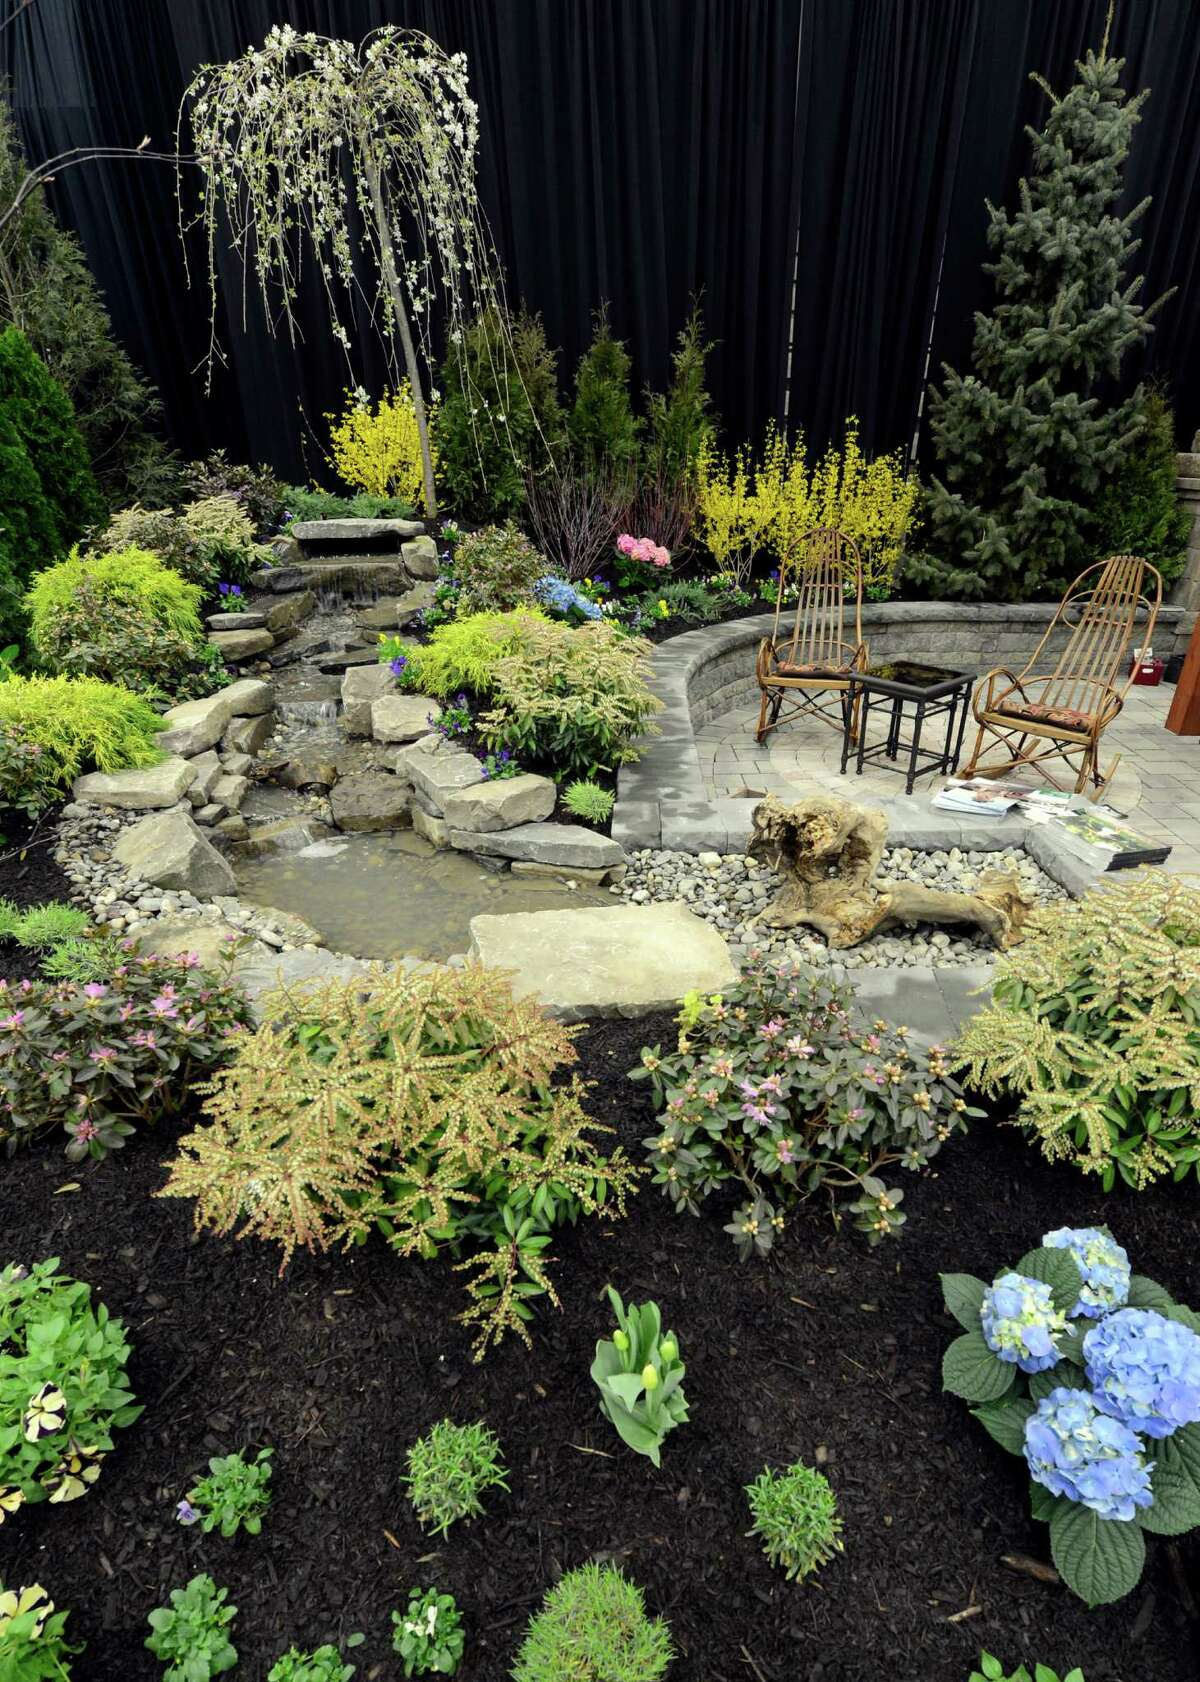 One of the floral and water displays March 22, 2013, this one designed by Decker Landscaping at the Capital District Garden & Flower Show at the McDonough Sport Complex in Troy, N.Y. The show continues through Sunday. (Skip Dickstein/Times Union)